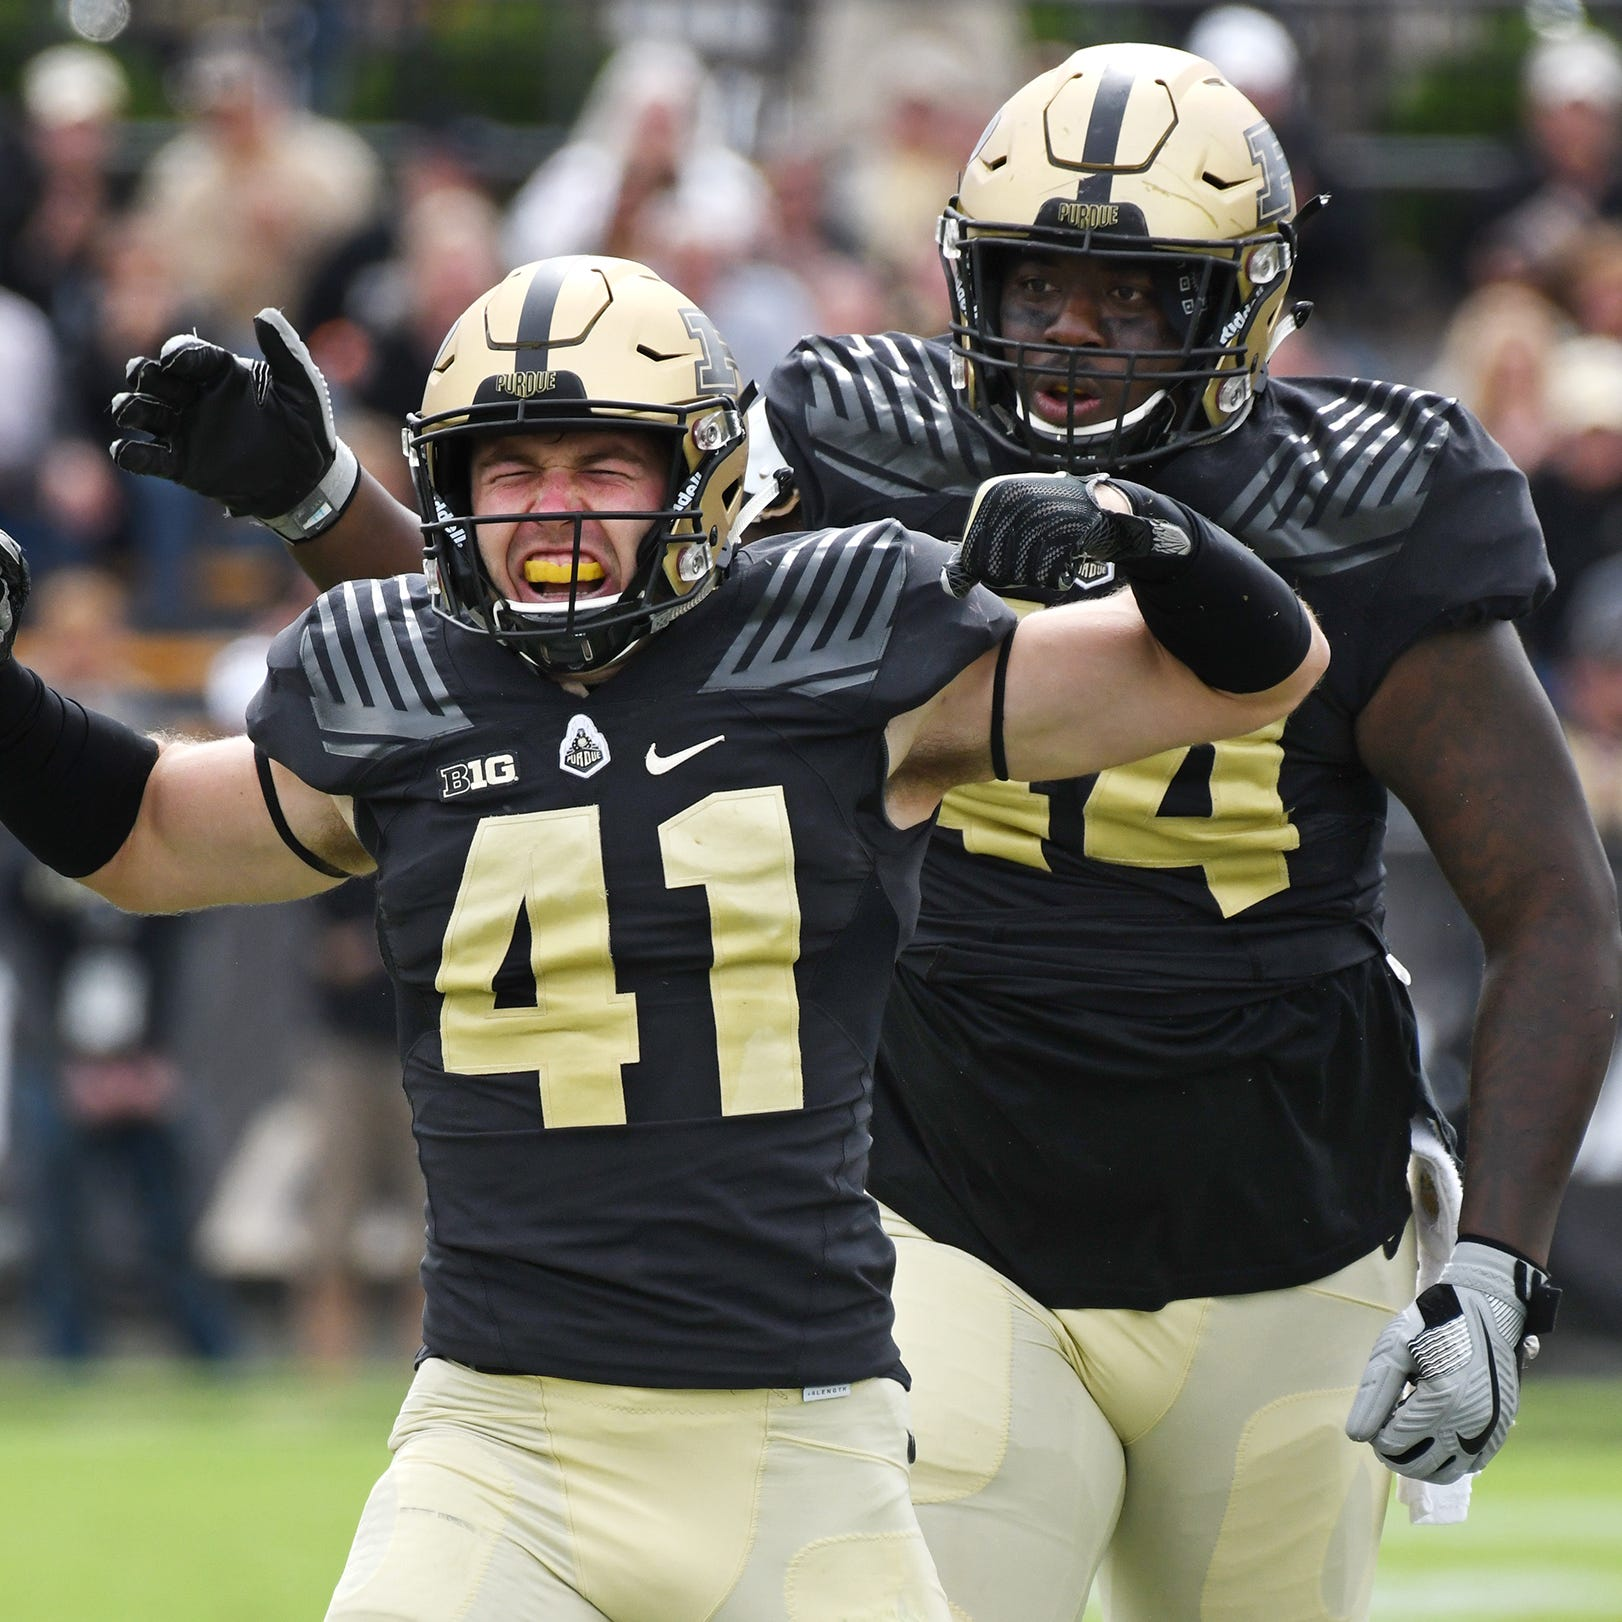 Purdue football 30, No. 23 Boston College 13 | 5 takeaways